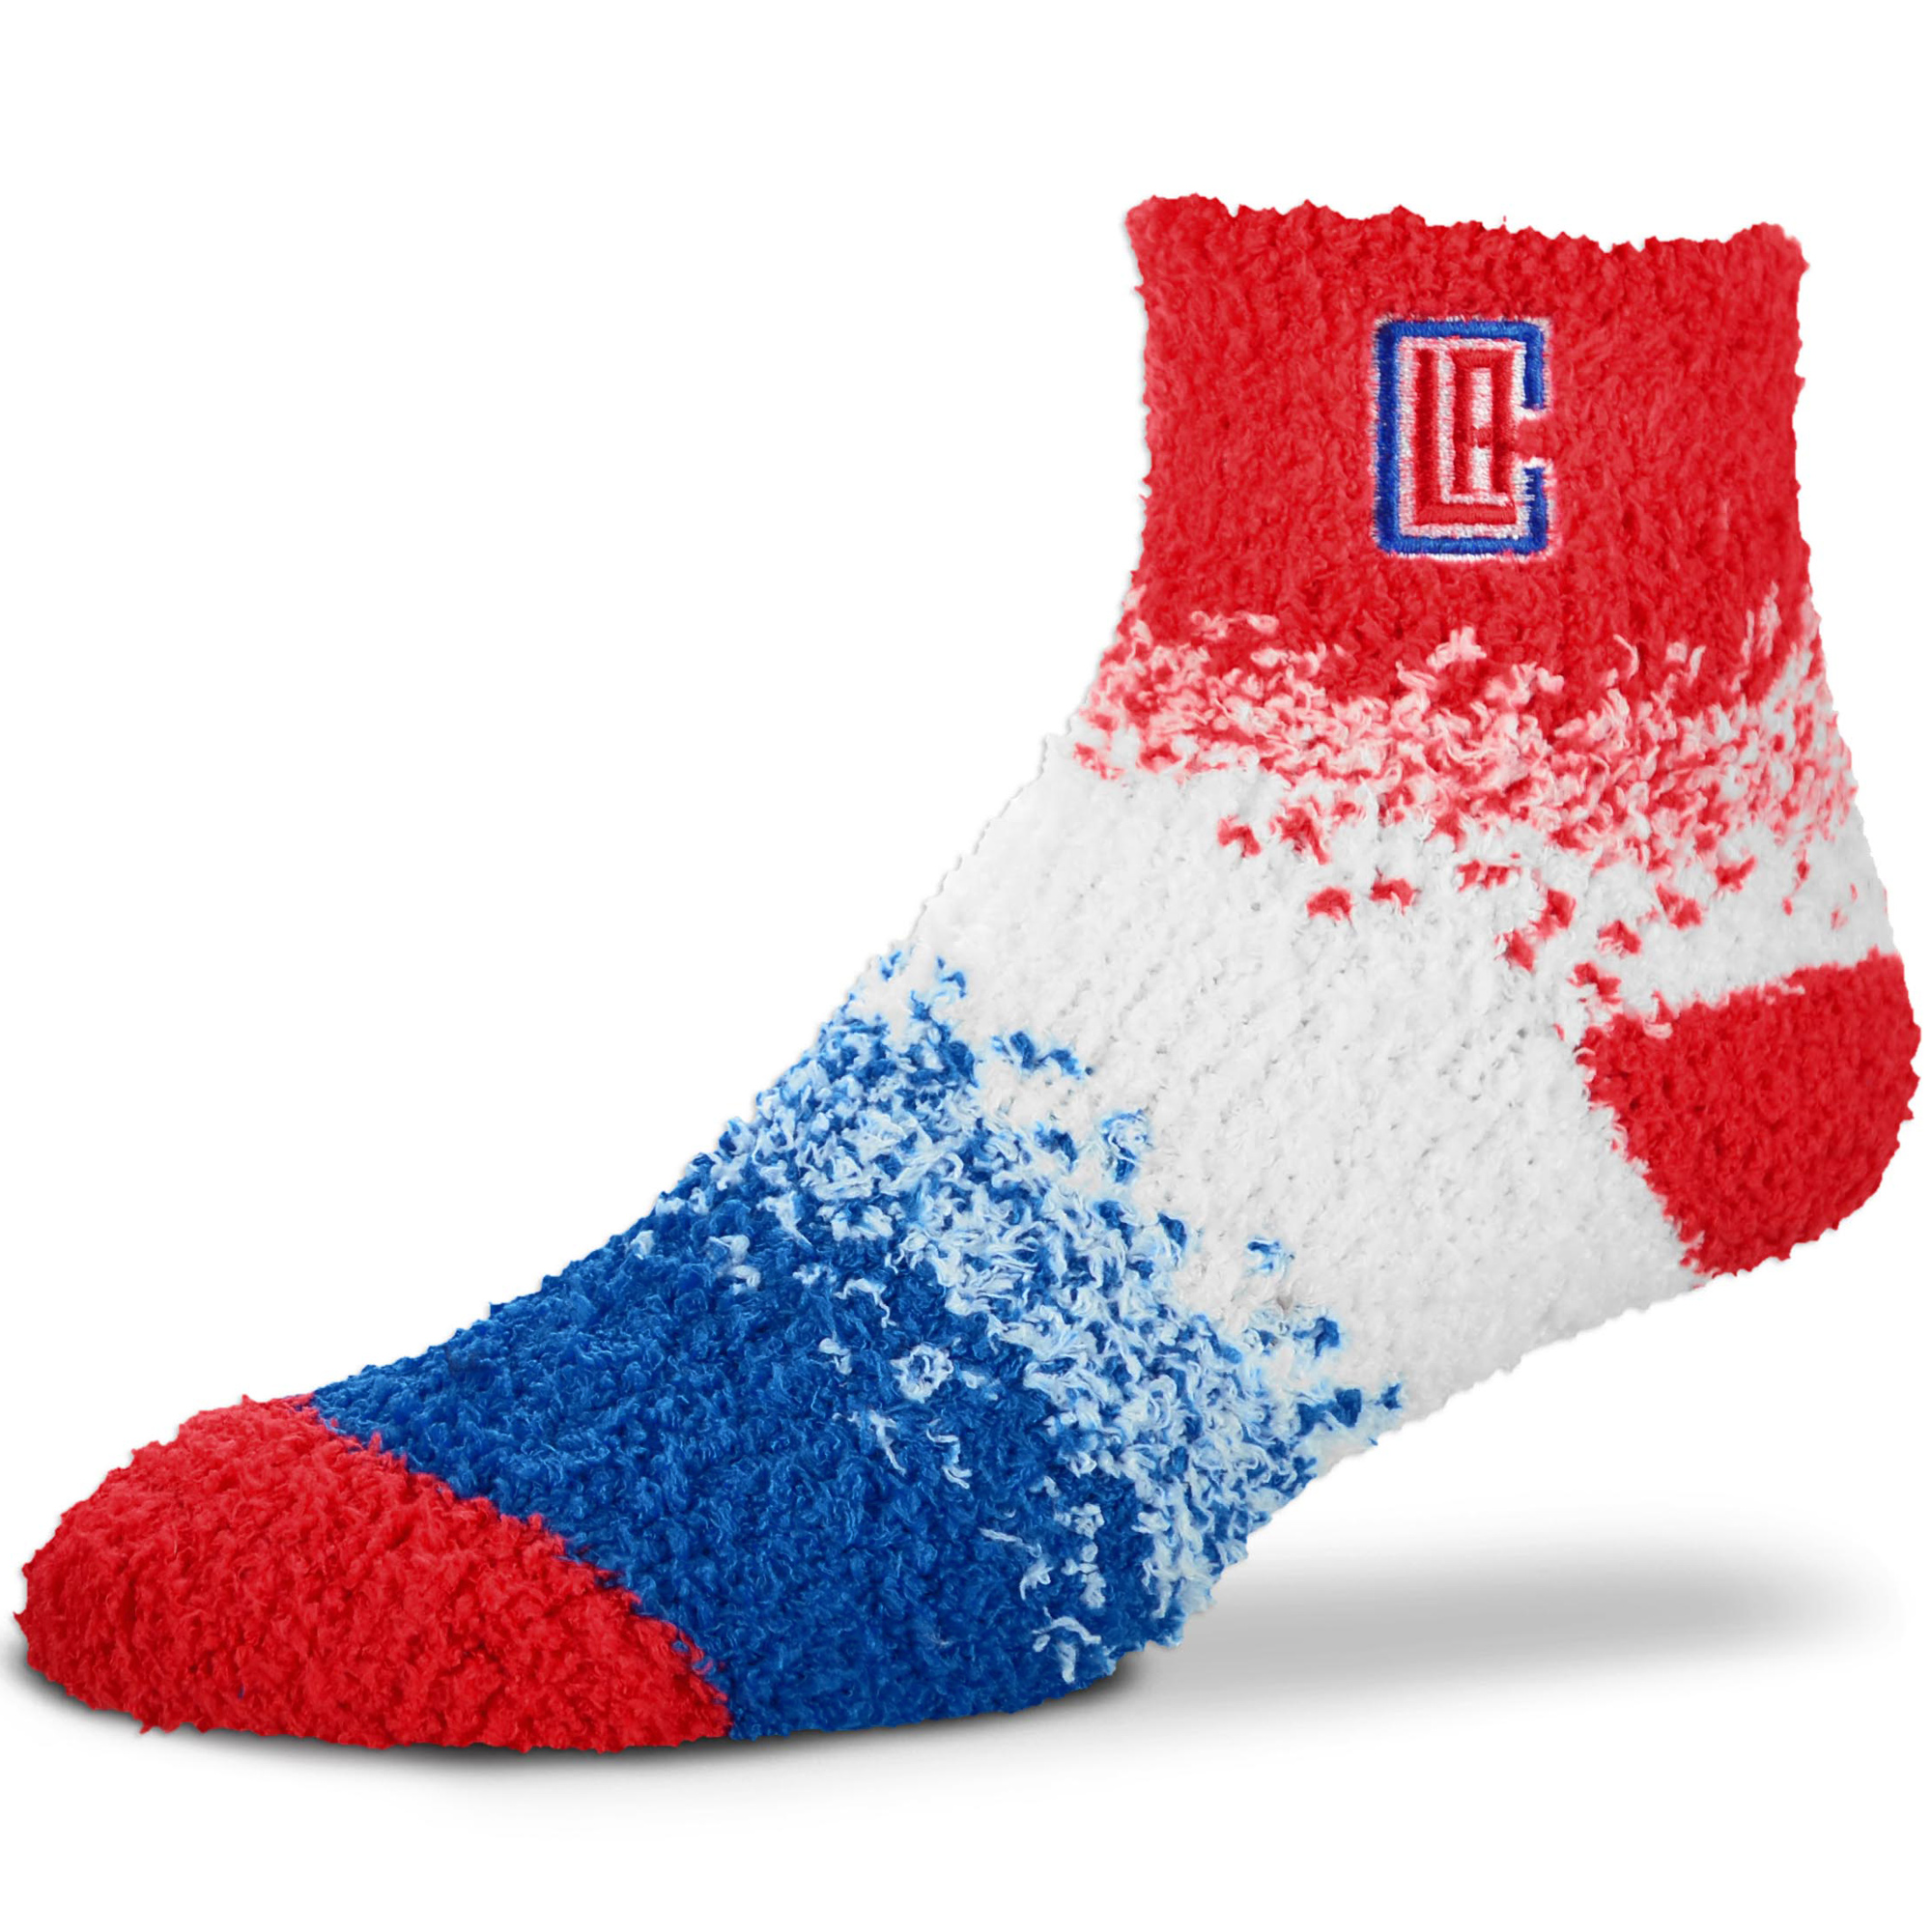 LA Clippers For Bare Feet Women's Marquee Sleep Soft Socks - No Size